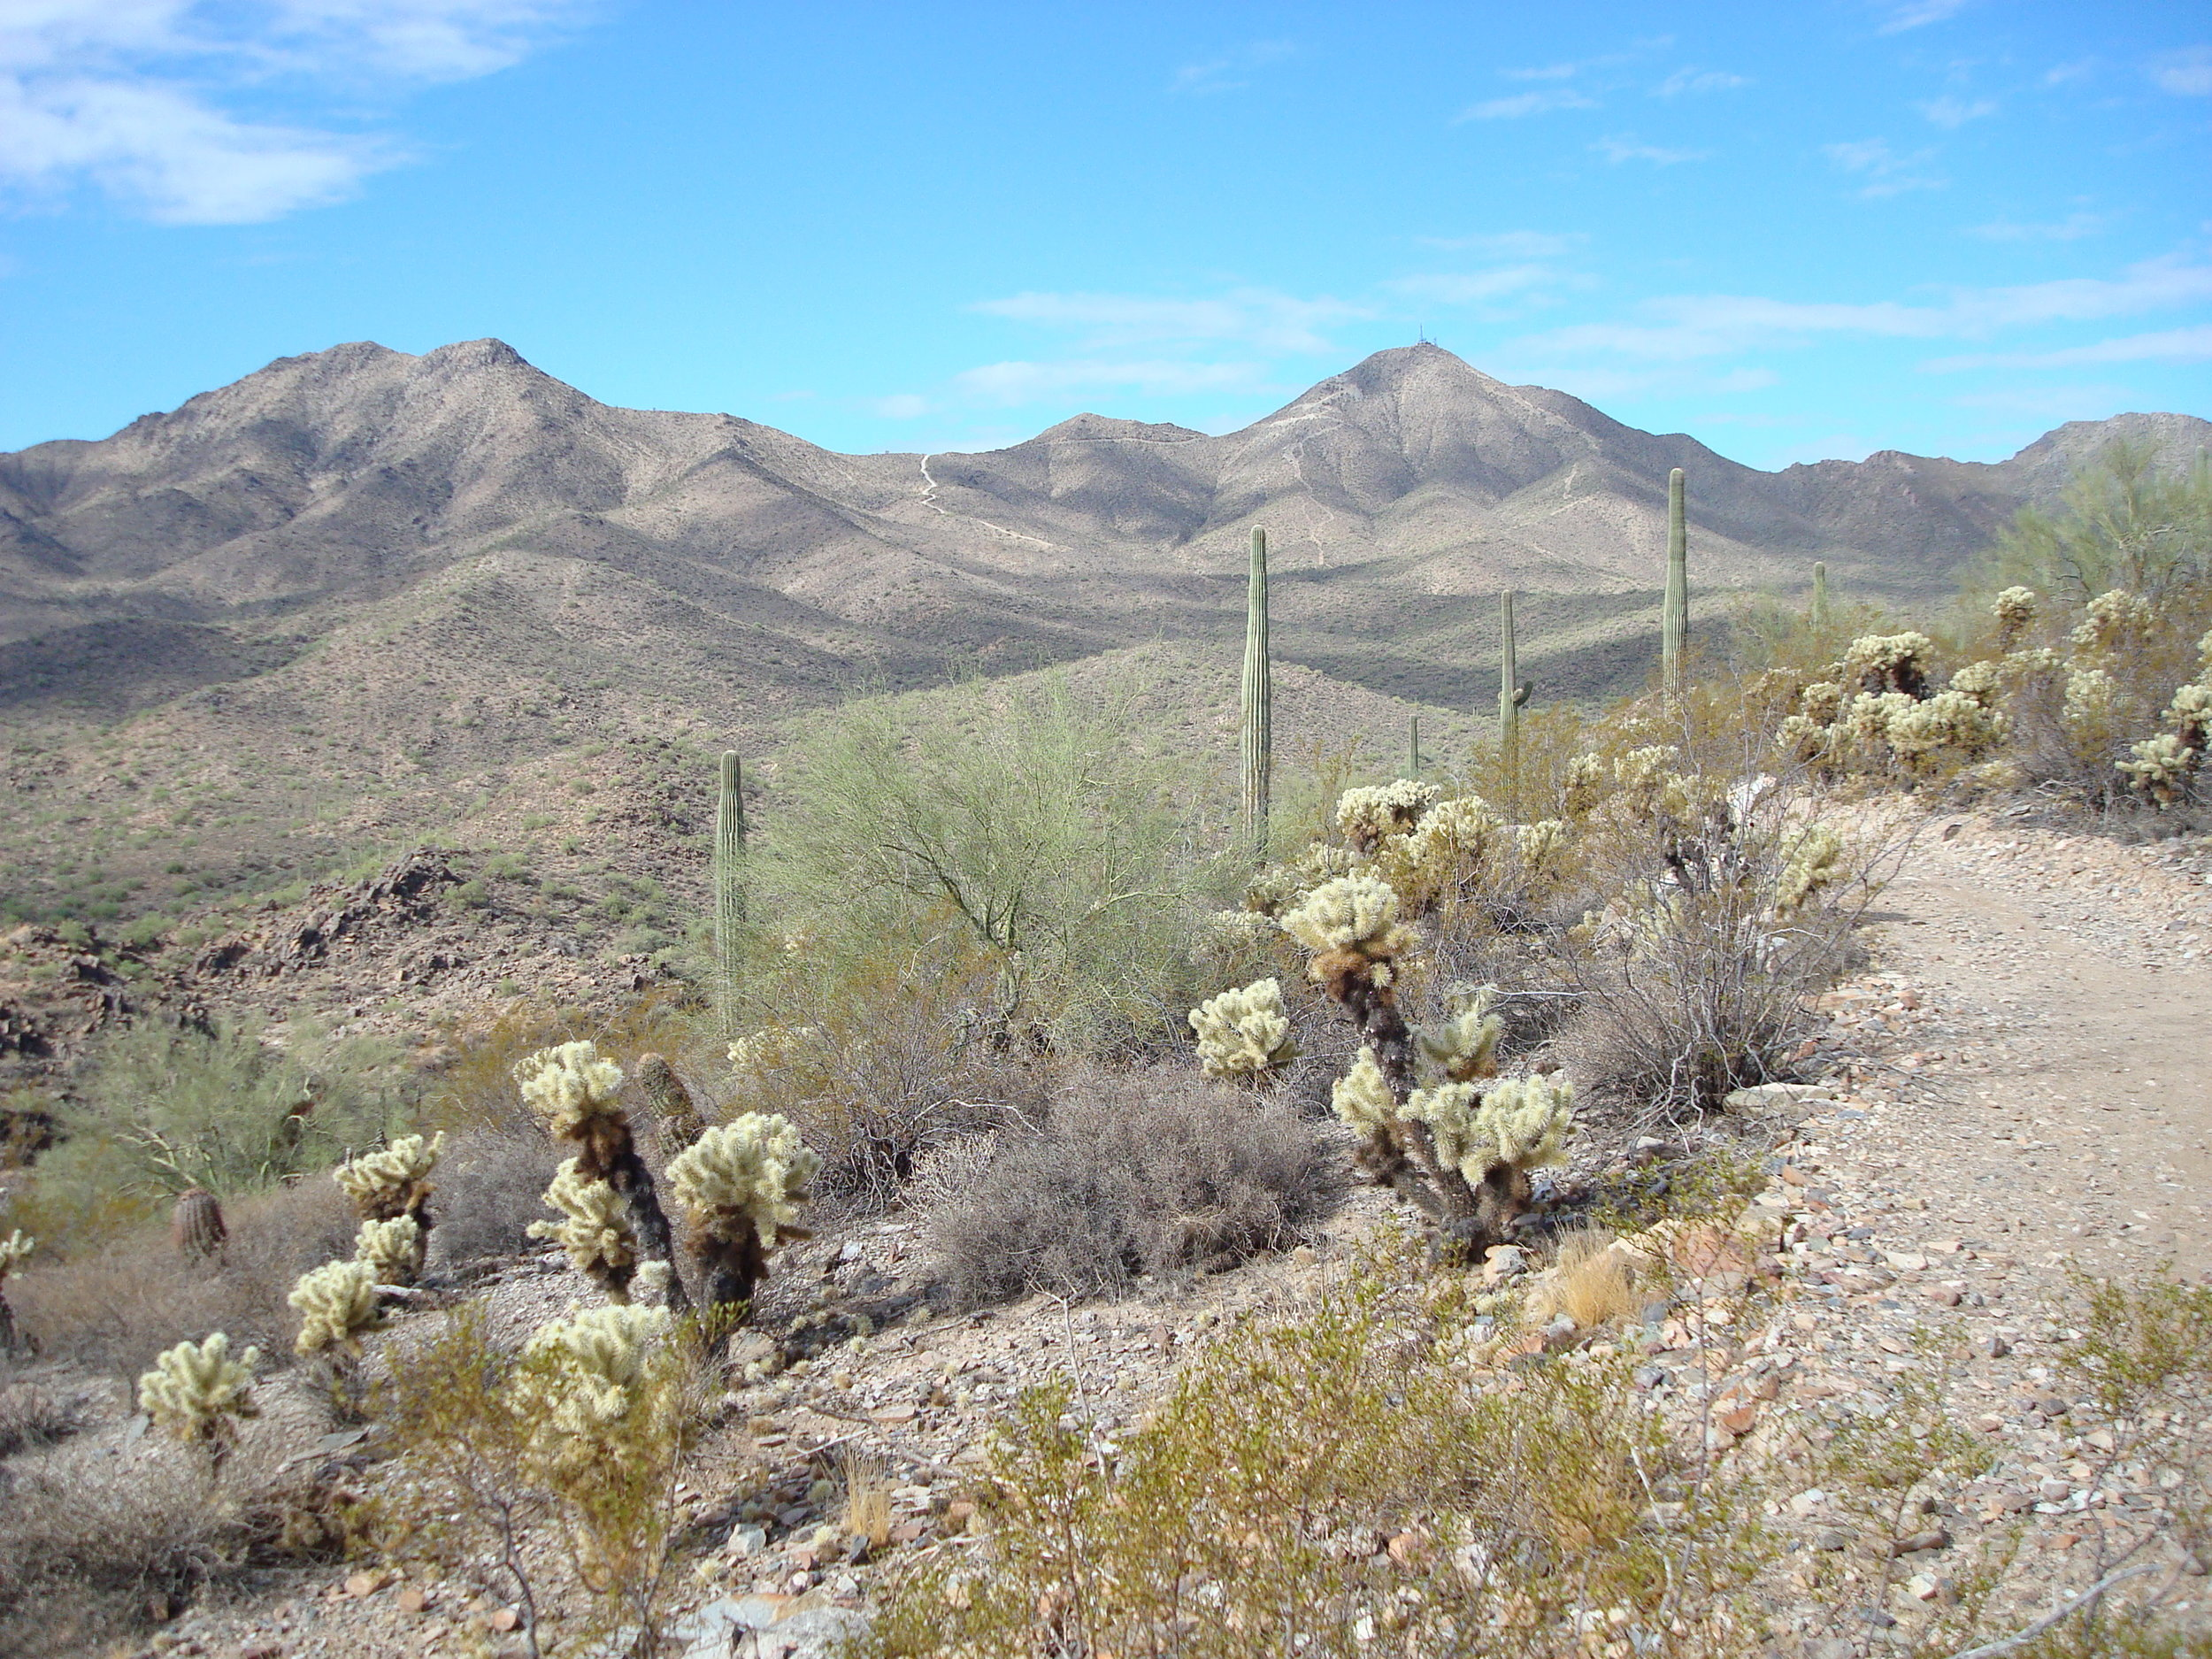 With all the right connections, you can ride up and over the McDowell Mountains